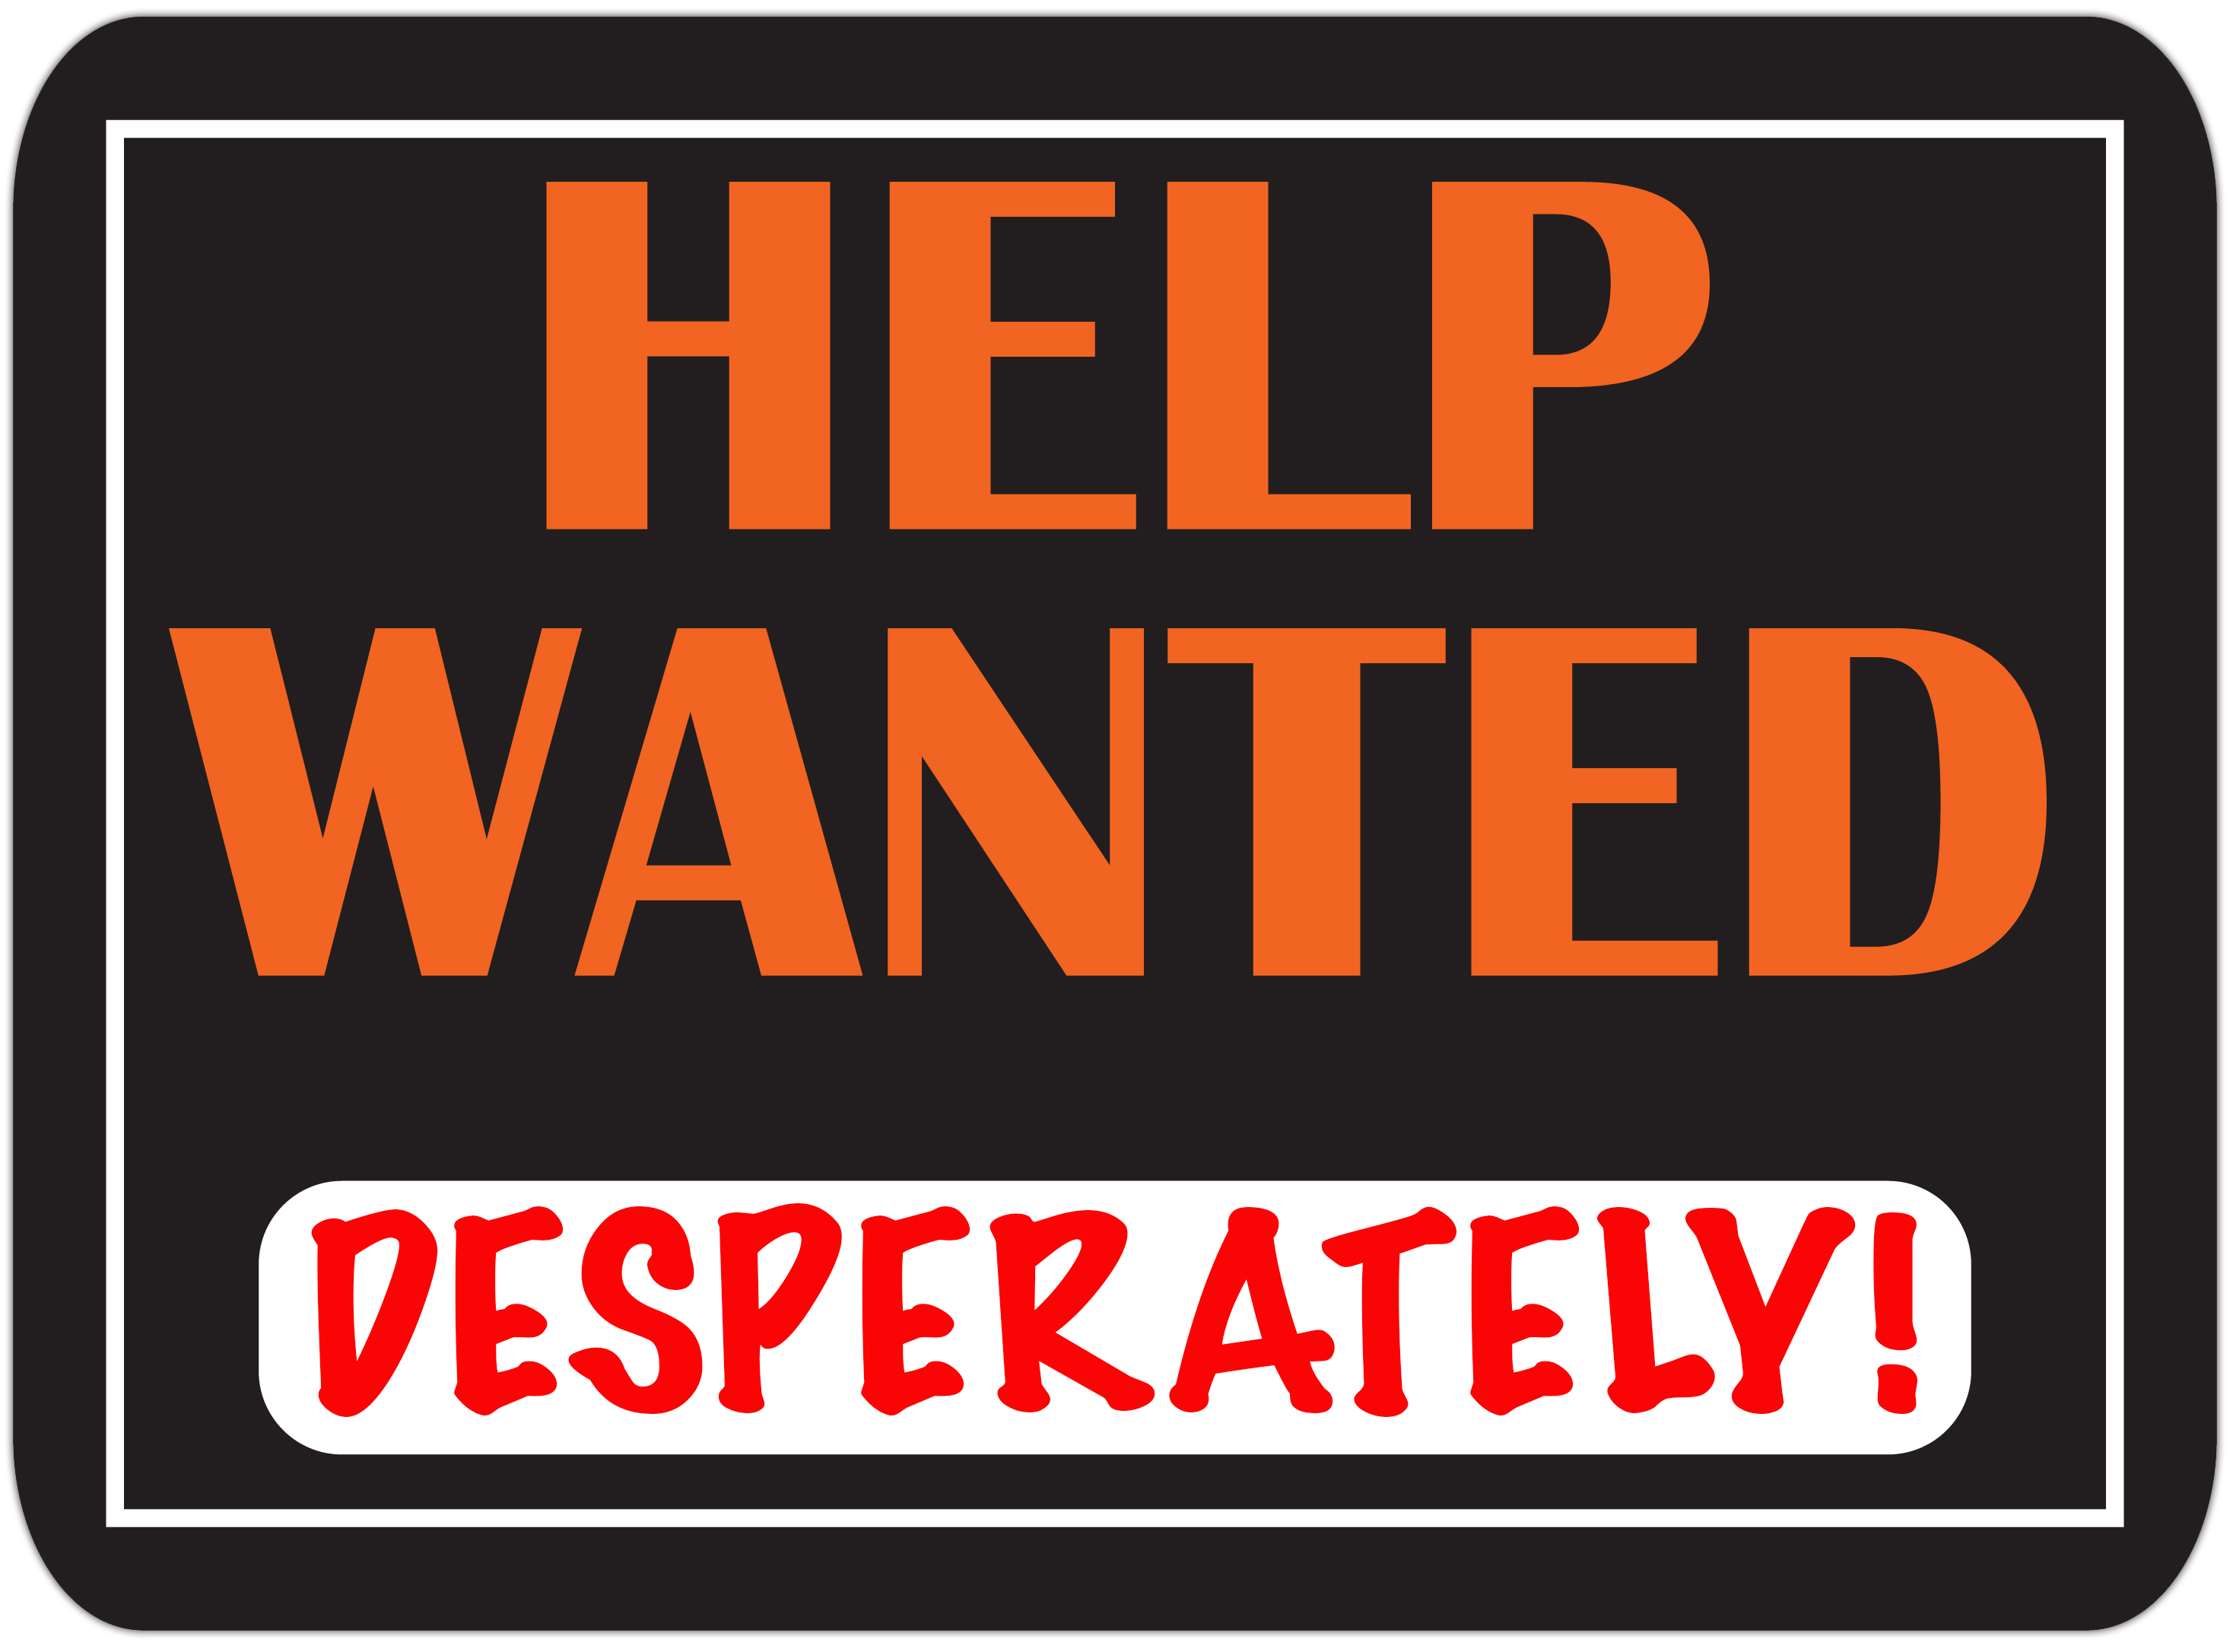 HELP WANTED DESPERATELY